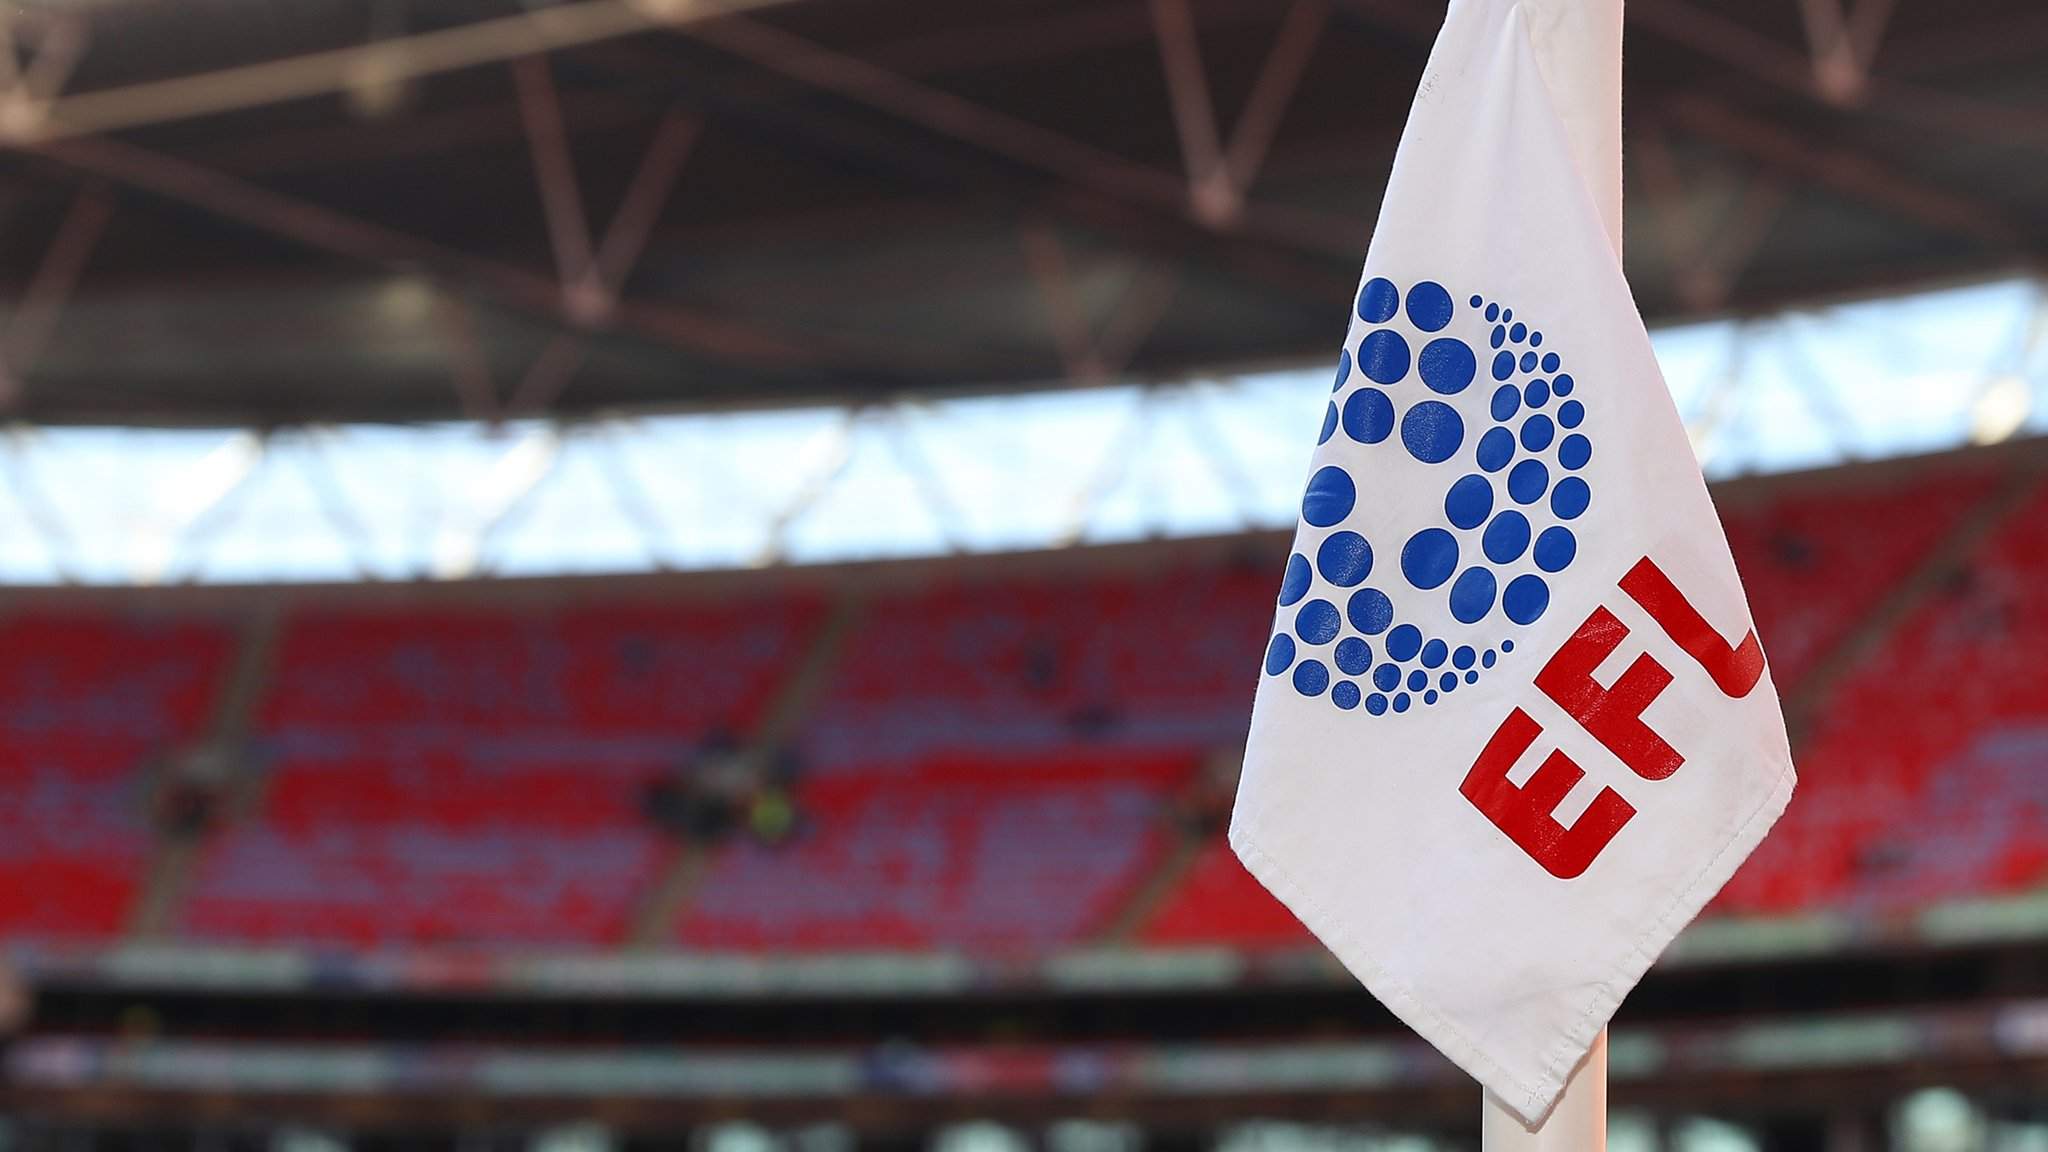 Championship: Clubs vote down EFL spending rules for greater transparency